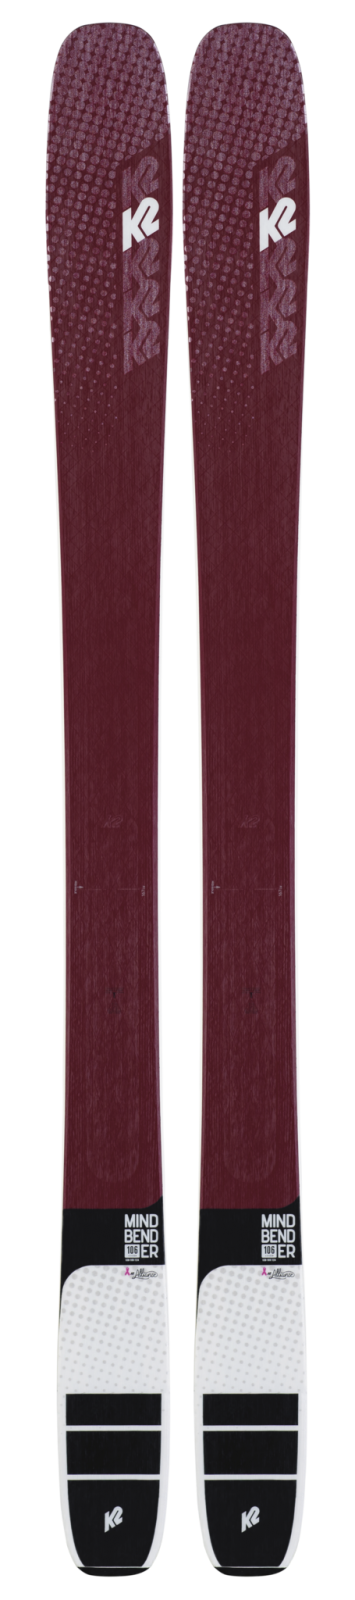 K2 Mindbender 106C Alliance Skis 2020